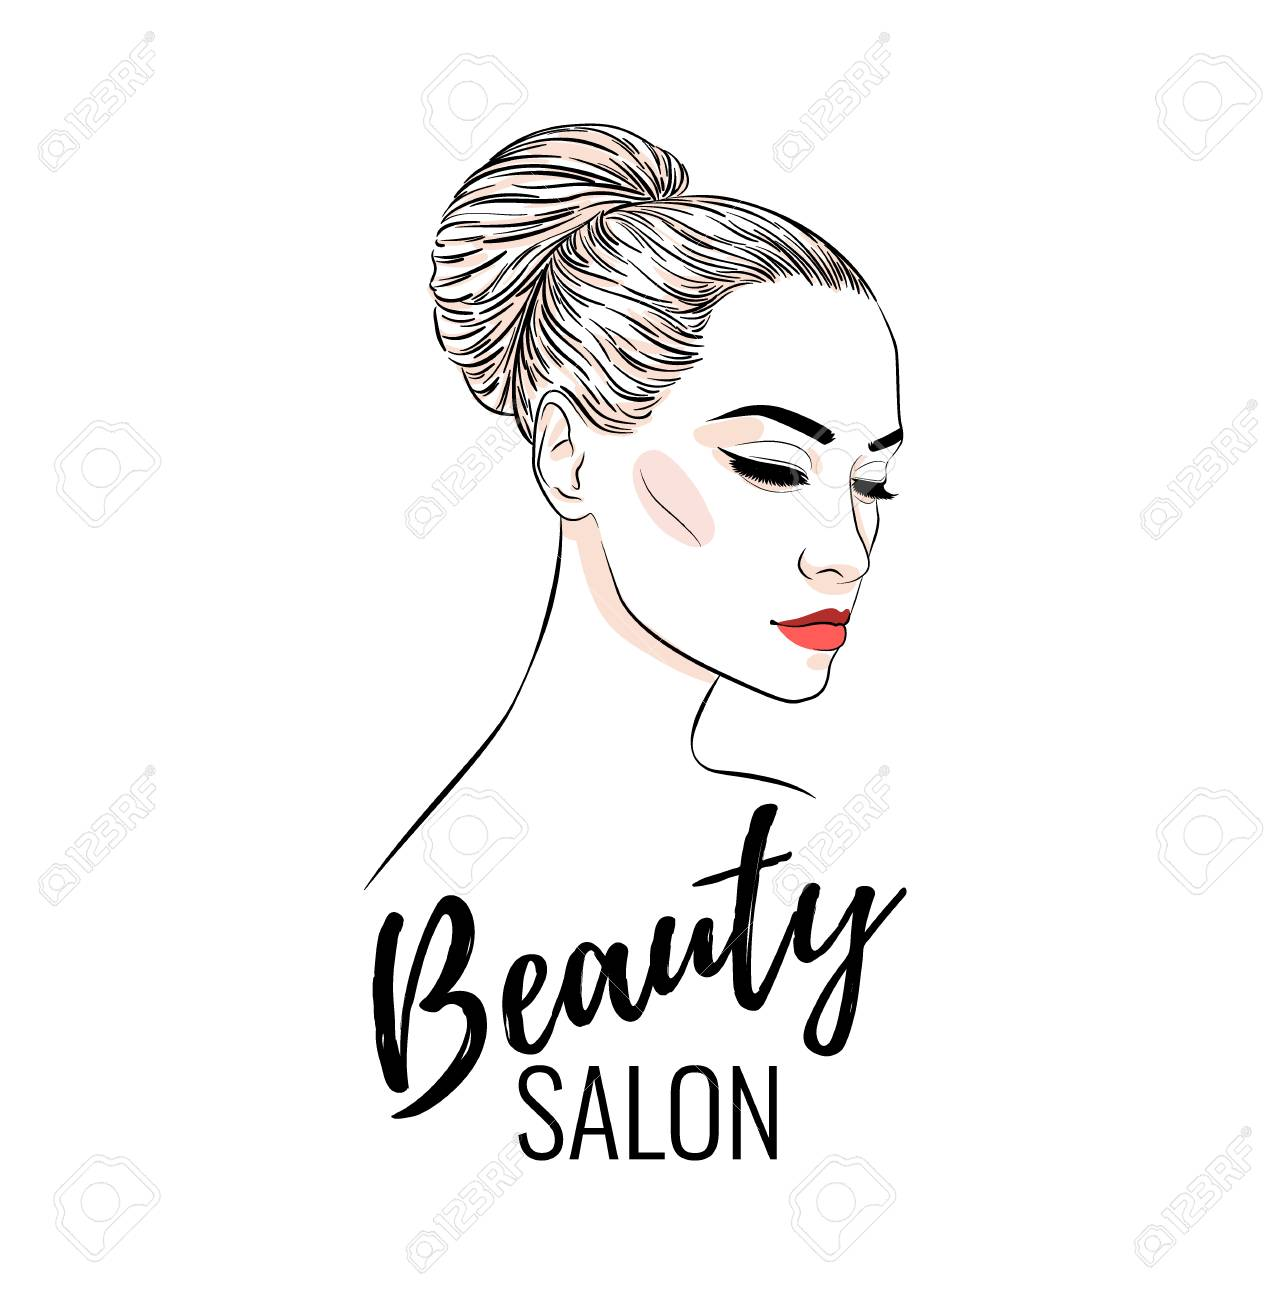 Beautiful Woman With Bun Hairstyle Beauty Salon Banner Or Poster Royalty Free Cliparts Vectors And Stock Illustration Image 115524114